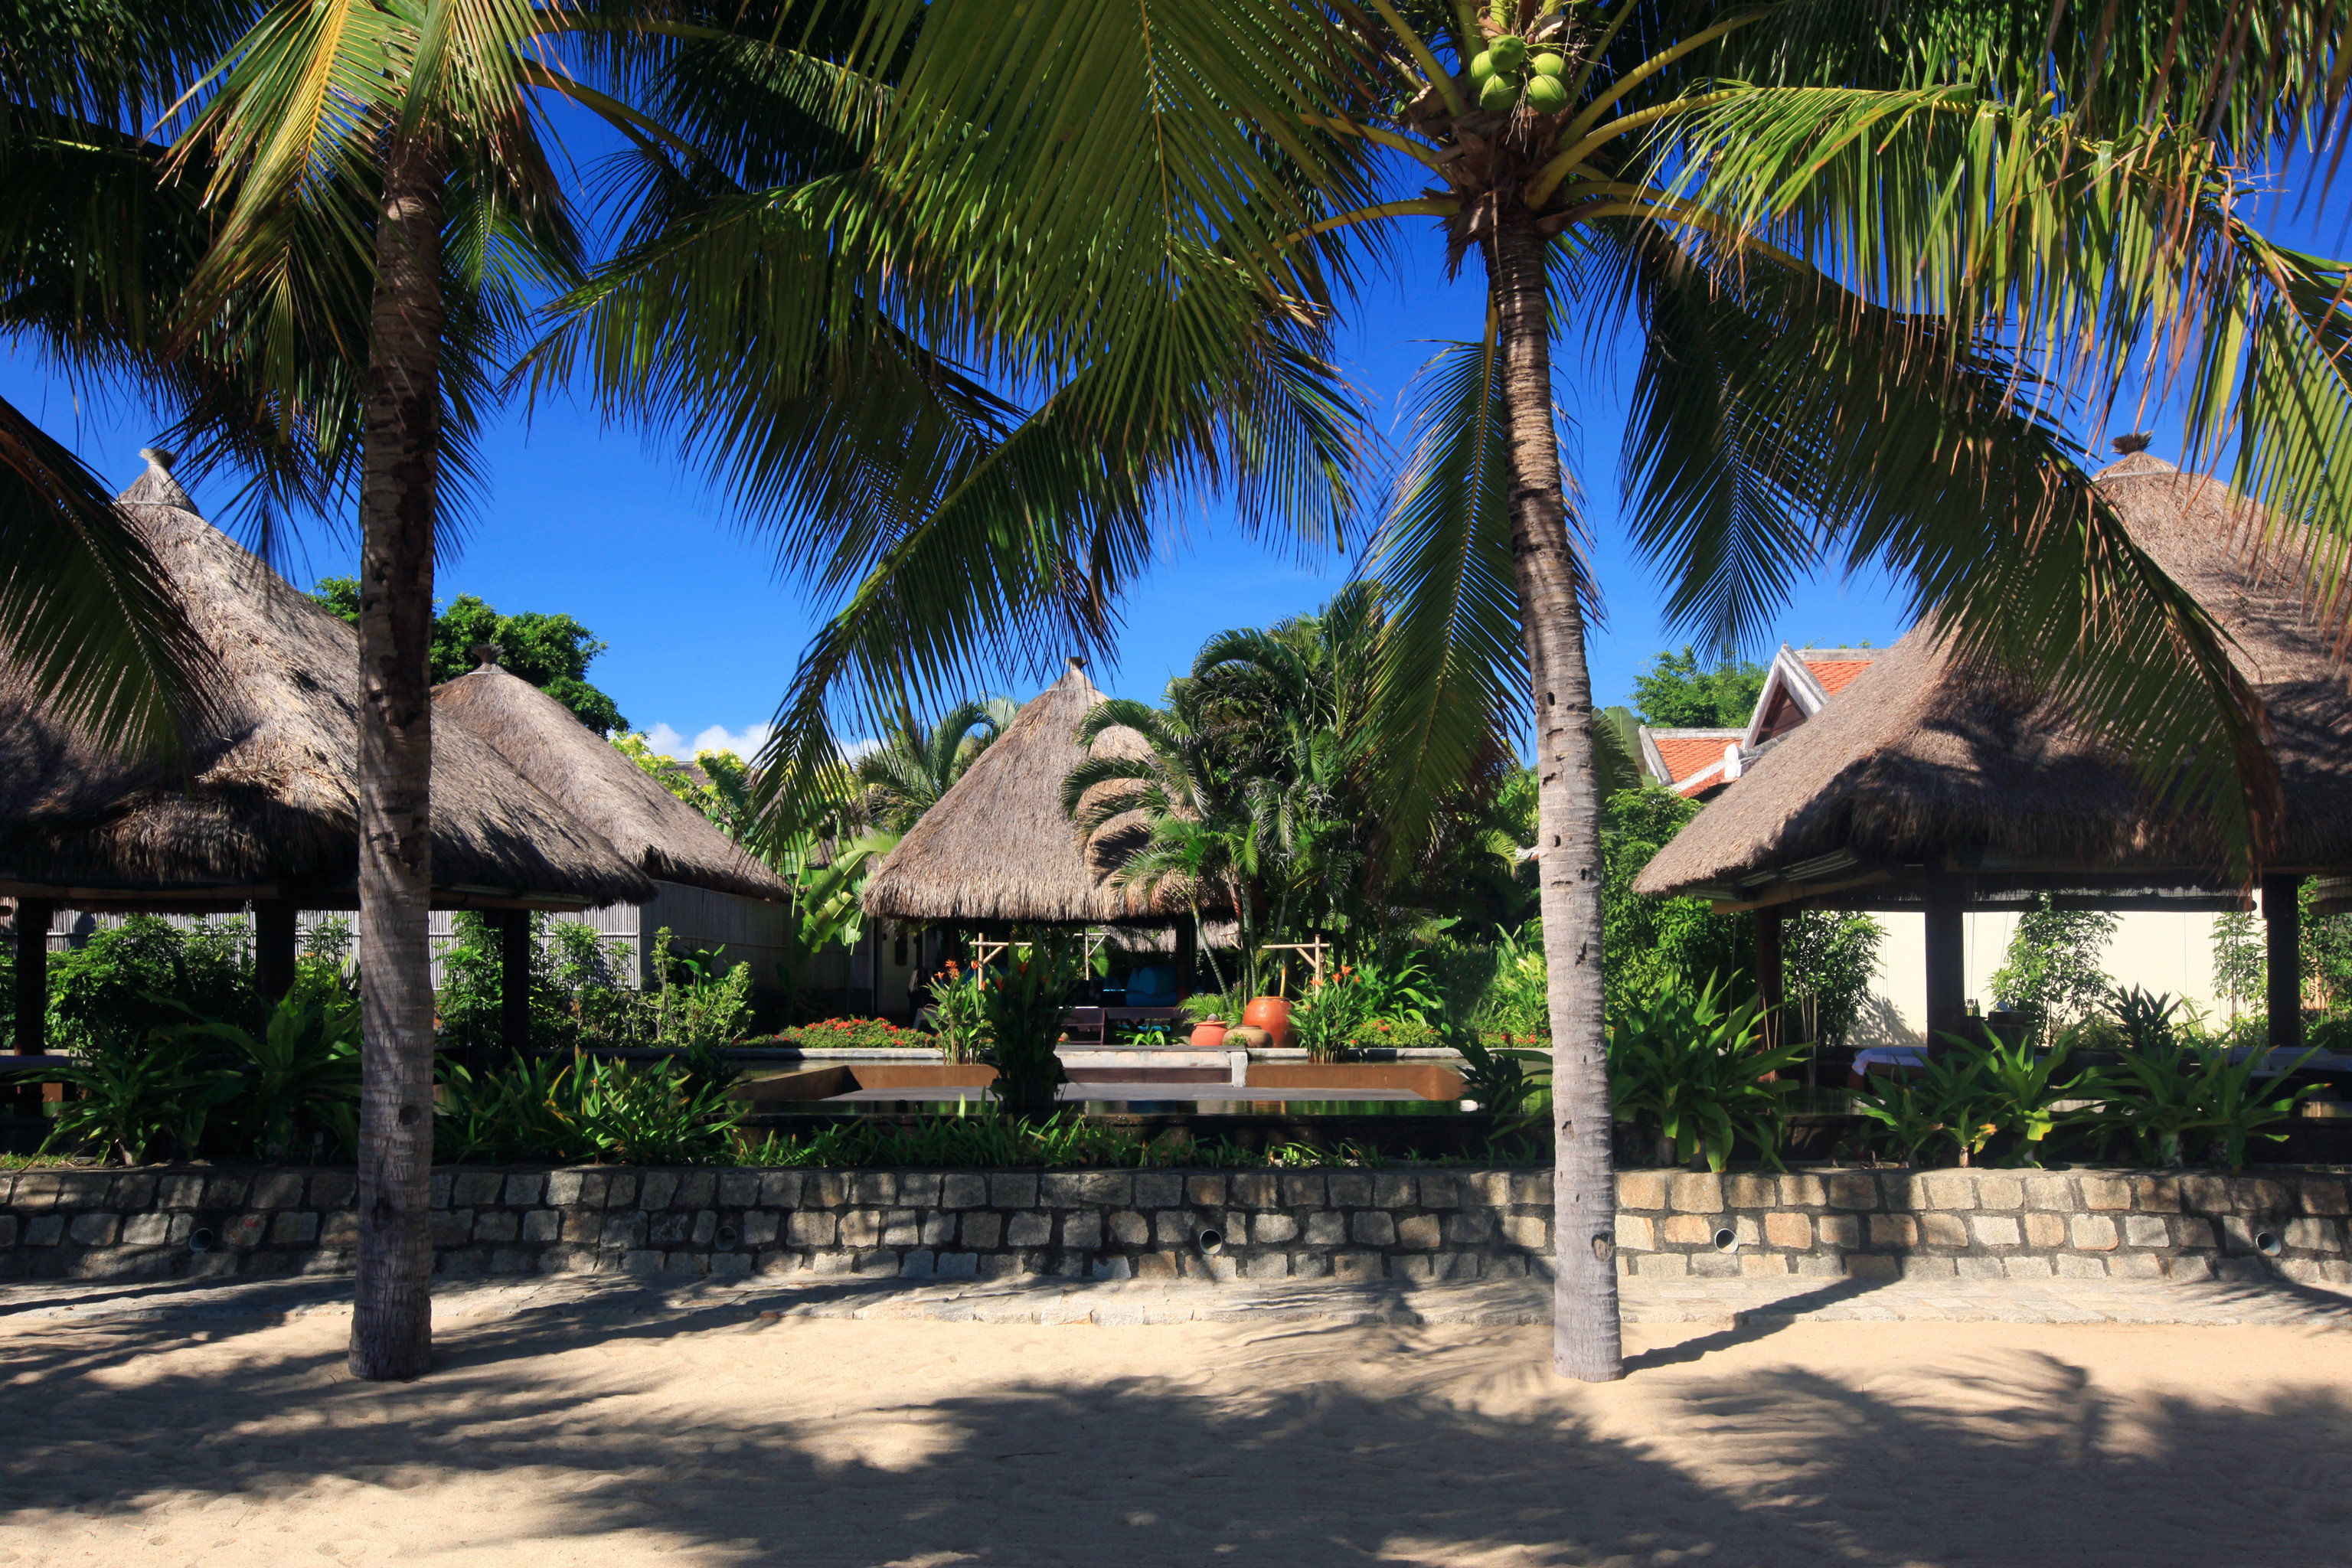 Beach Beachfront Courtyard Family Grounds Jungle Scenic views Spa Tropical Wellness tree ground palm plant Resort arecales tropics caribbean palm family shade hacienda lined sandy